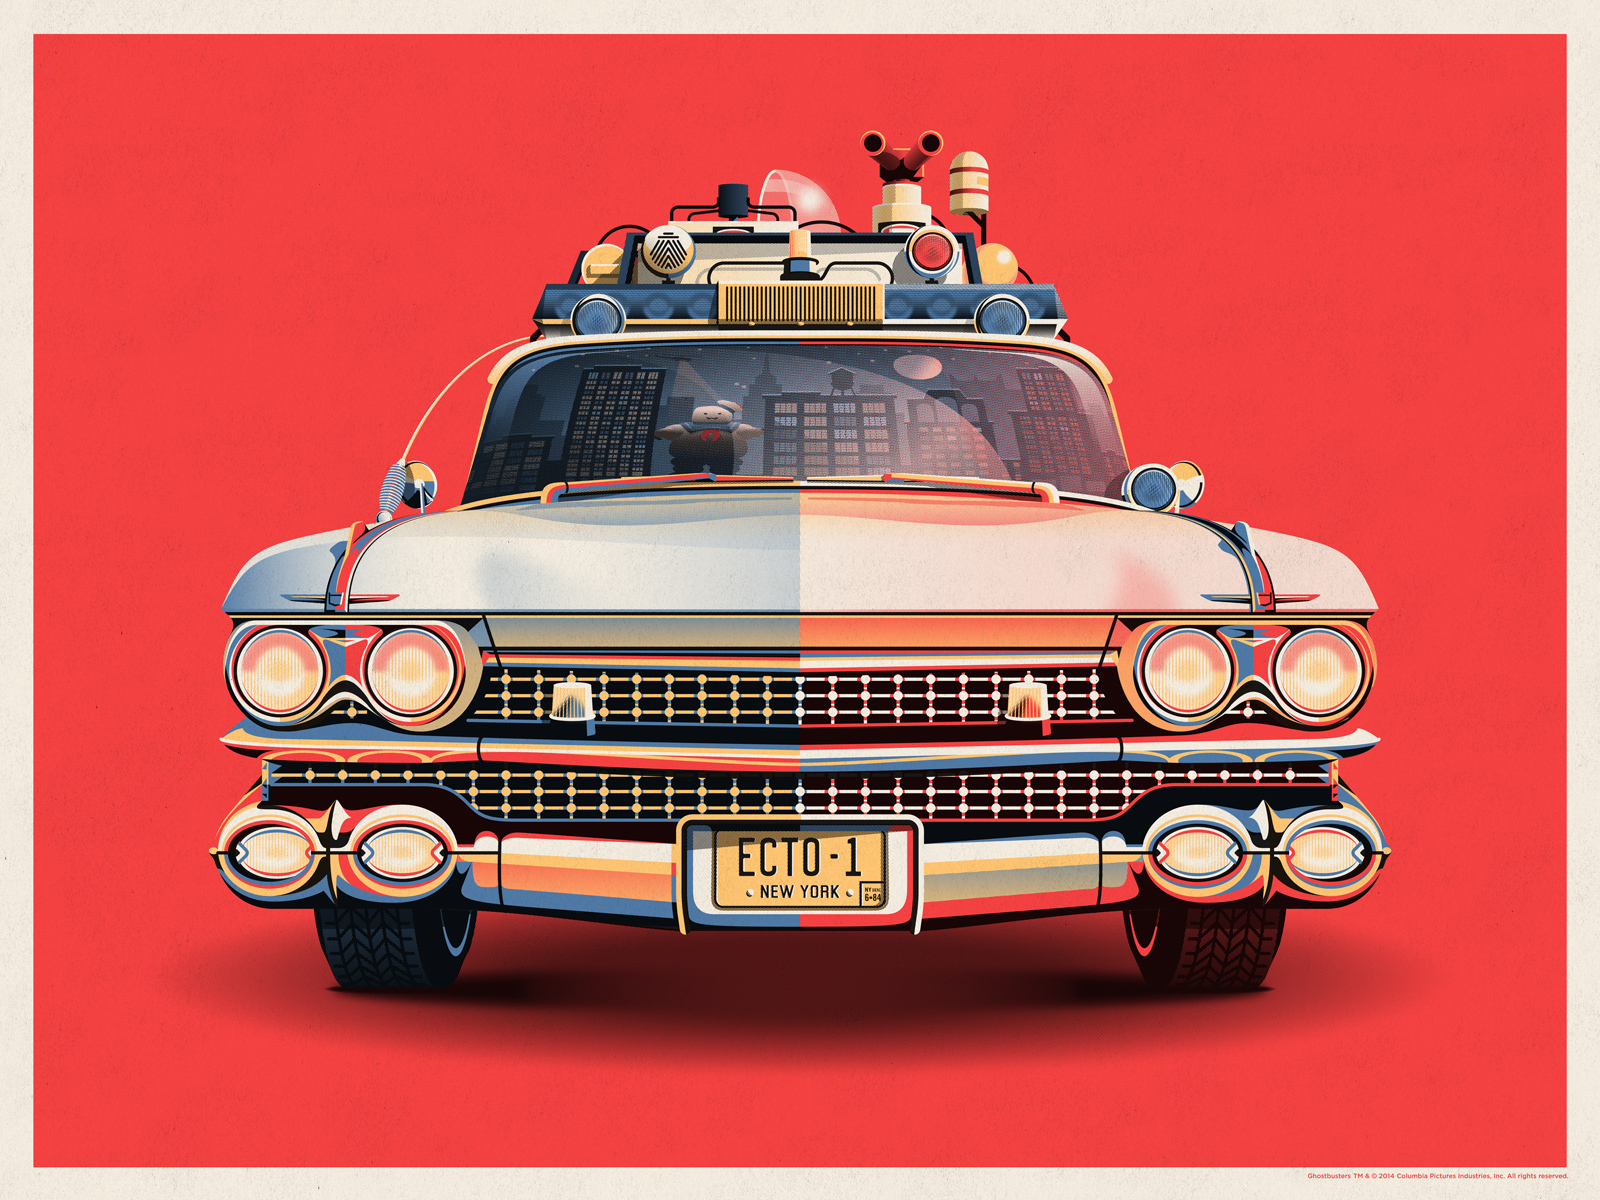 Ecto-1 Poster by DKNG